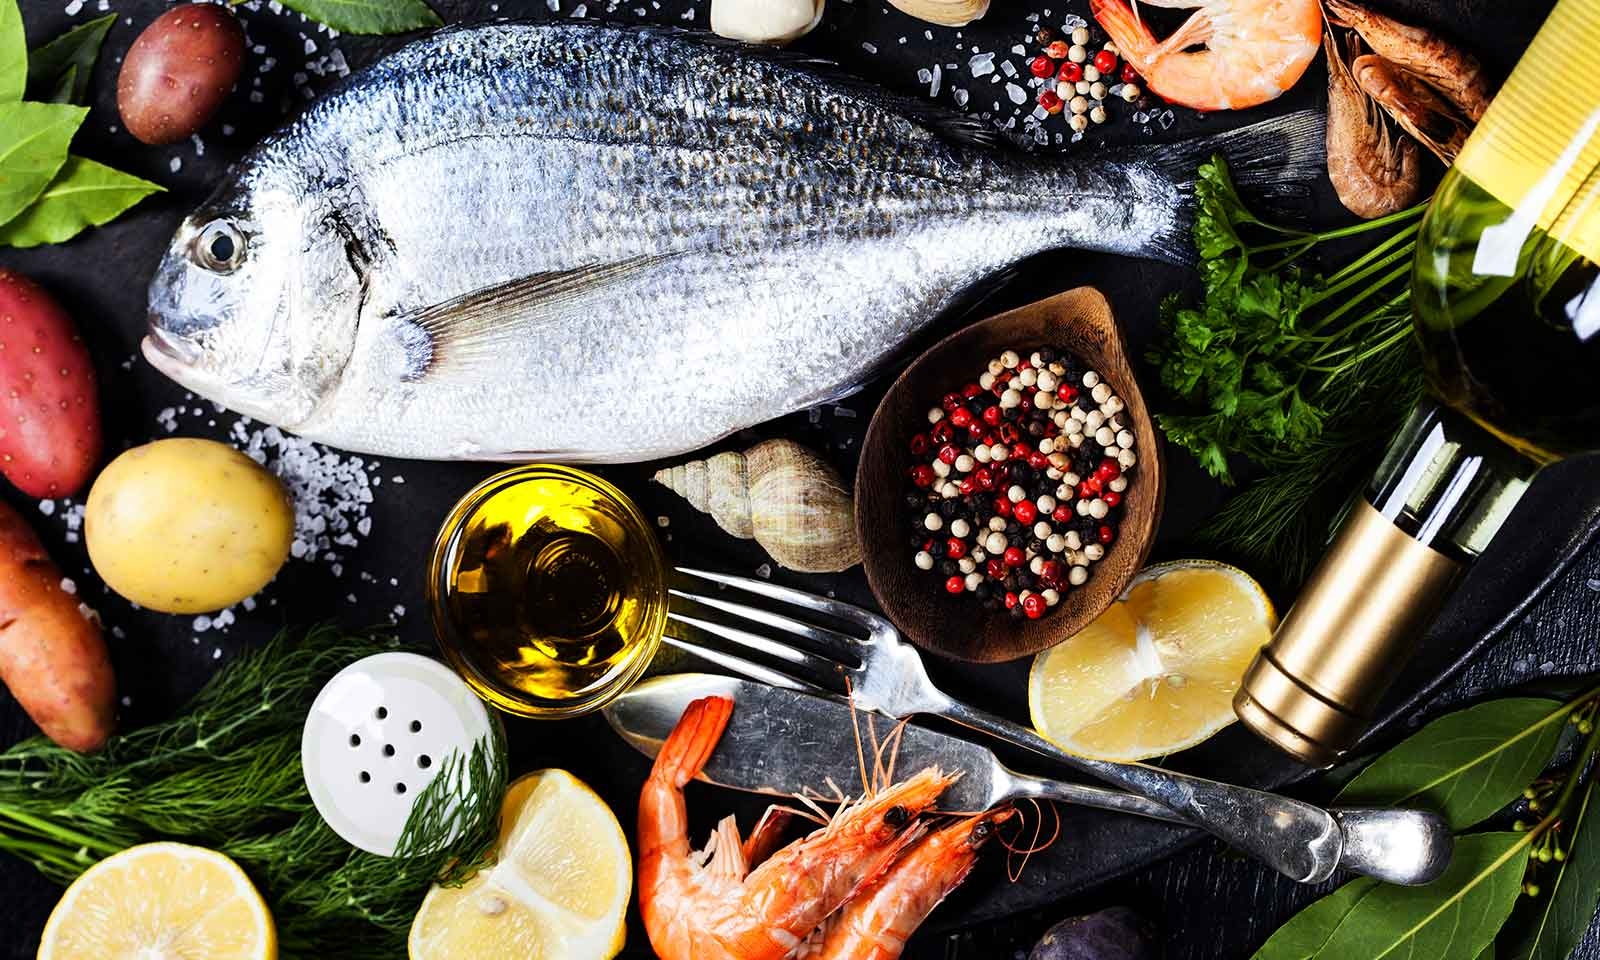 Six Of The Best Sources Of Omega 3 Fatty Acids